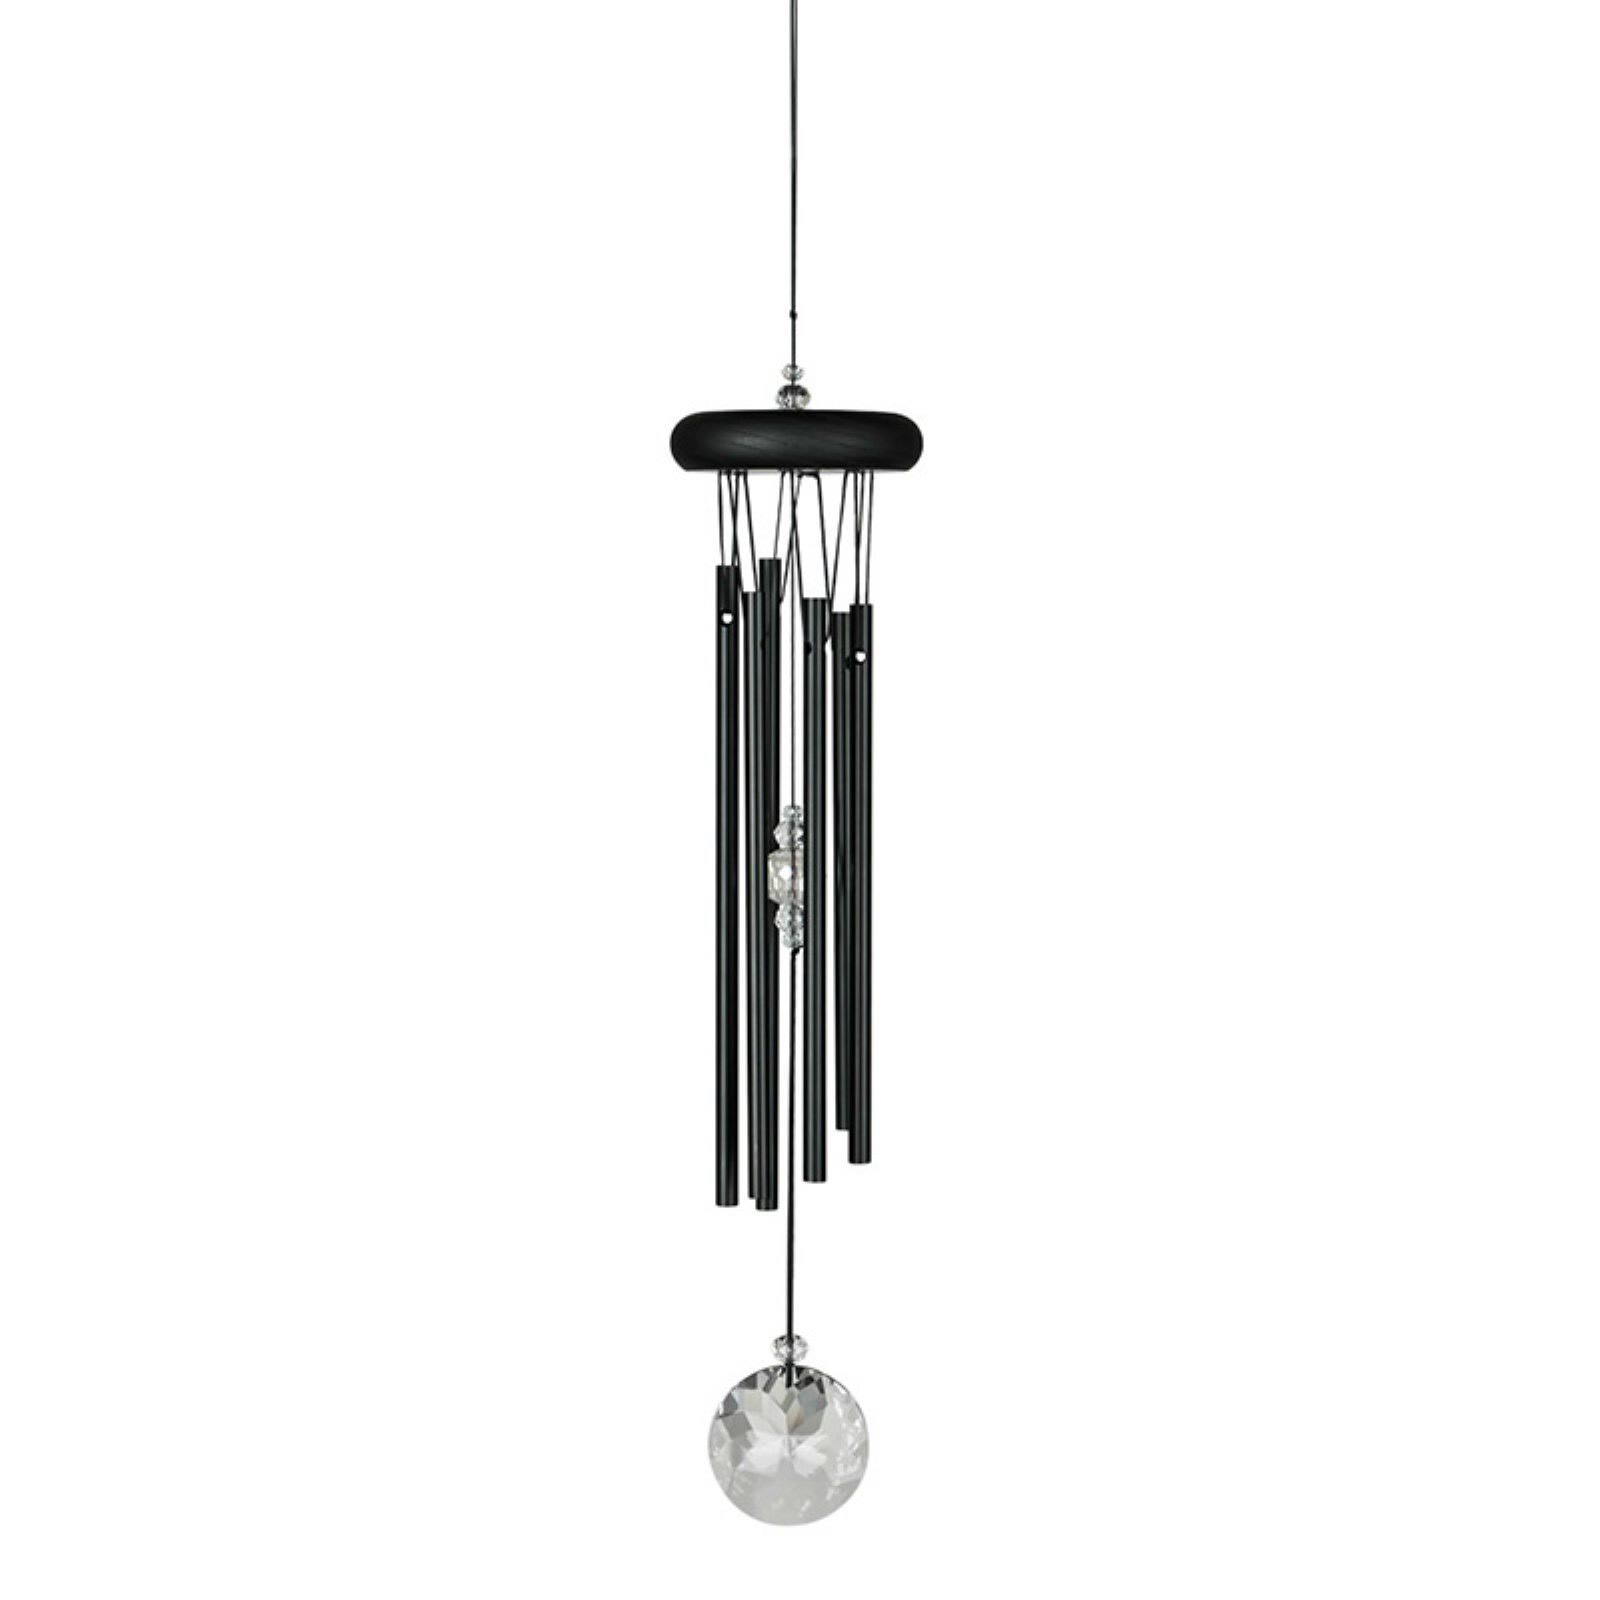 Woodstock Chimes Crystal Meditation Wind Chime - Black, 16""